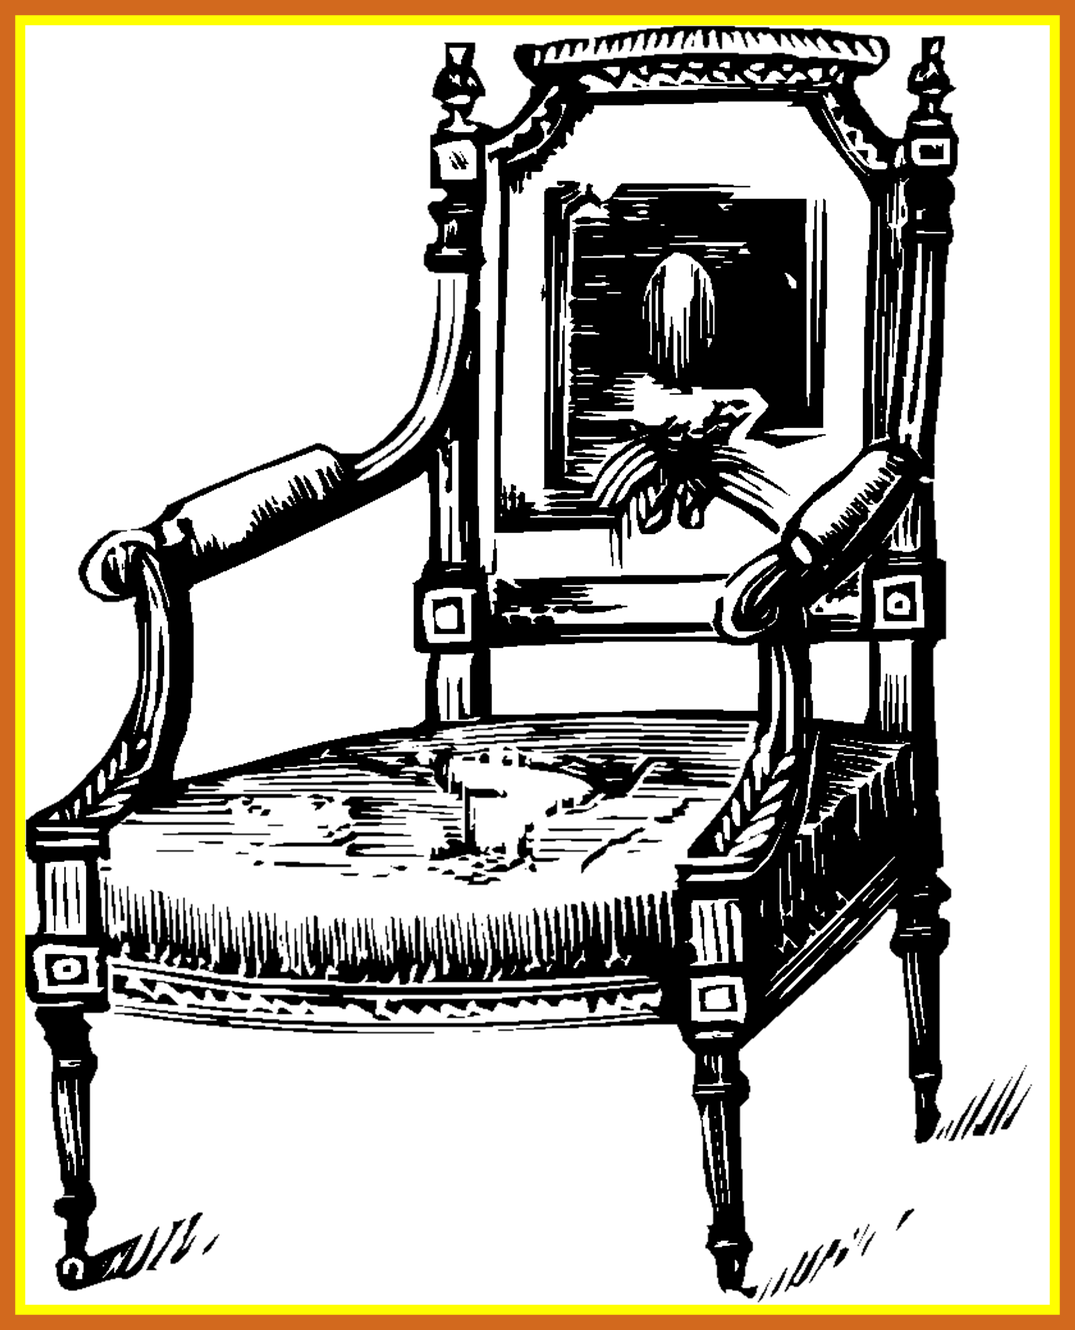 Furniture Clipart Home Decor Furniture Home Decor